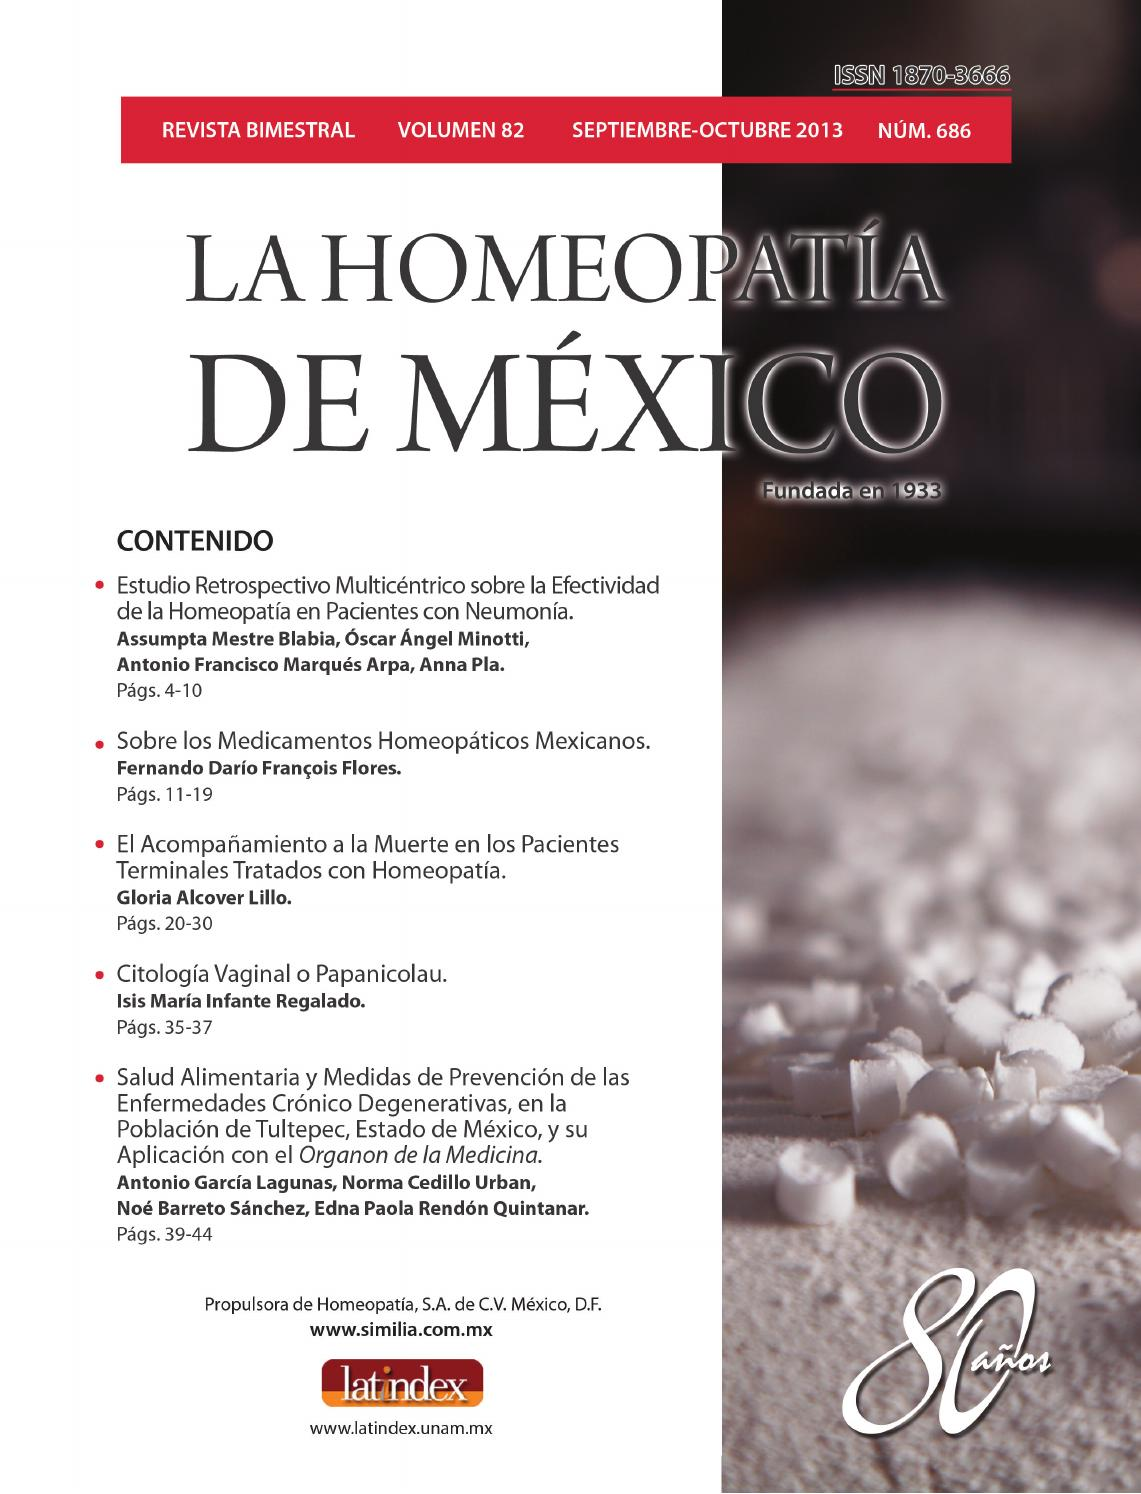 Hering laboratorio homeopatico